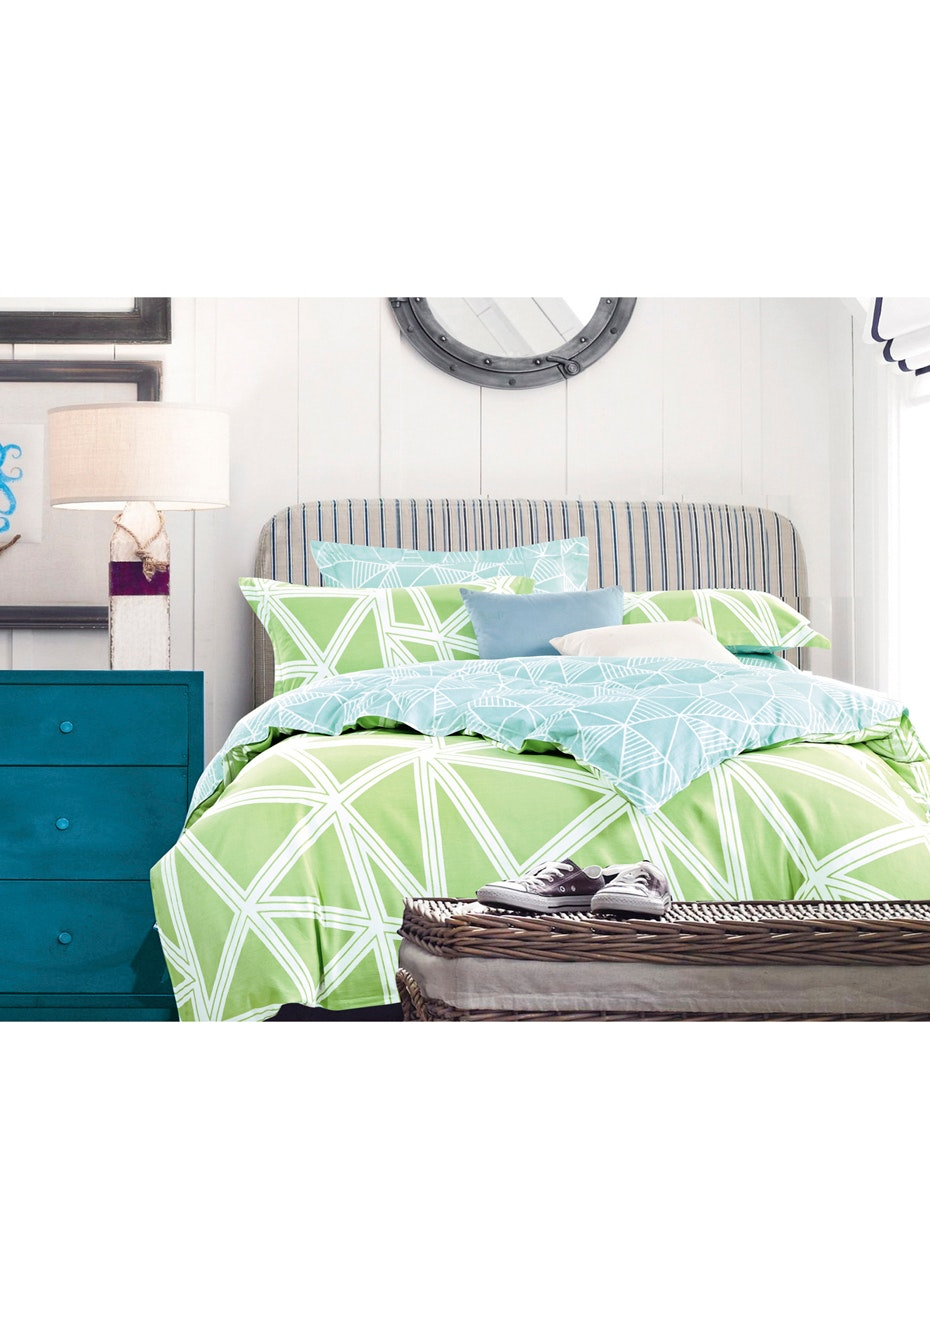 Mollymook Green Quilt Cover Set - King Bed - Reversible Design